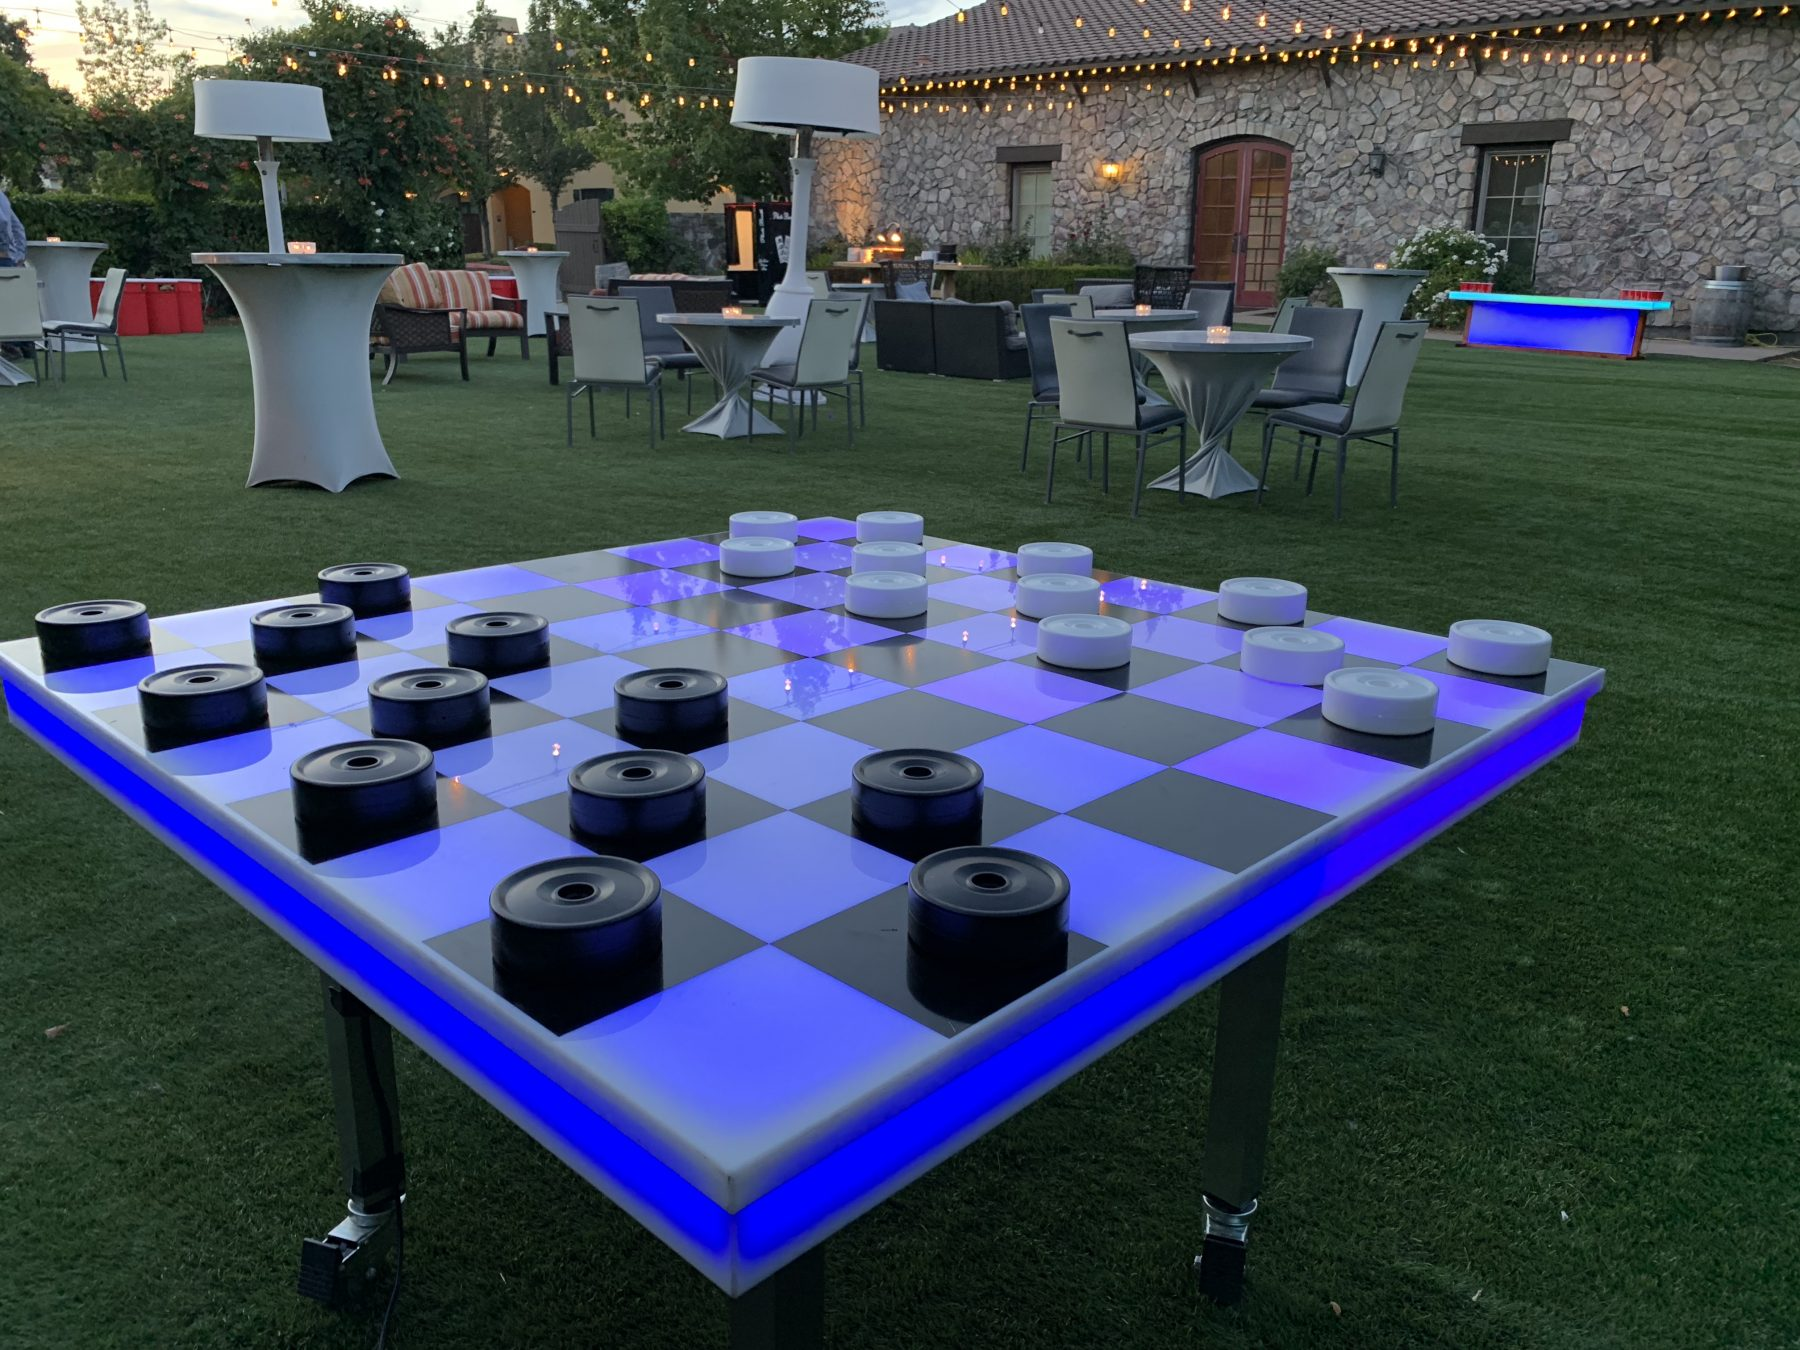 Glow checkers game rental